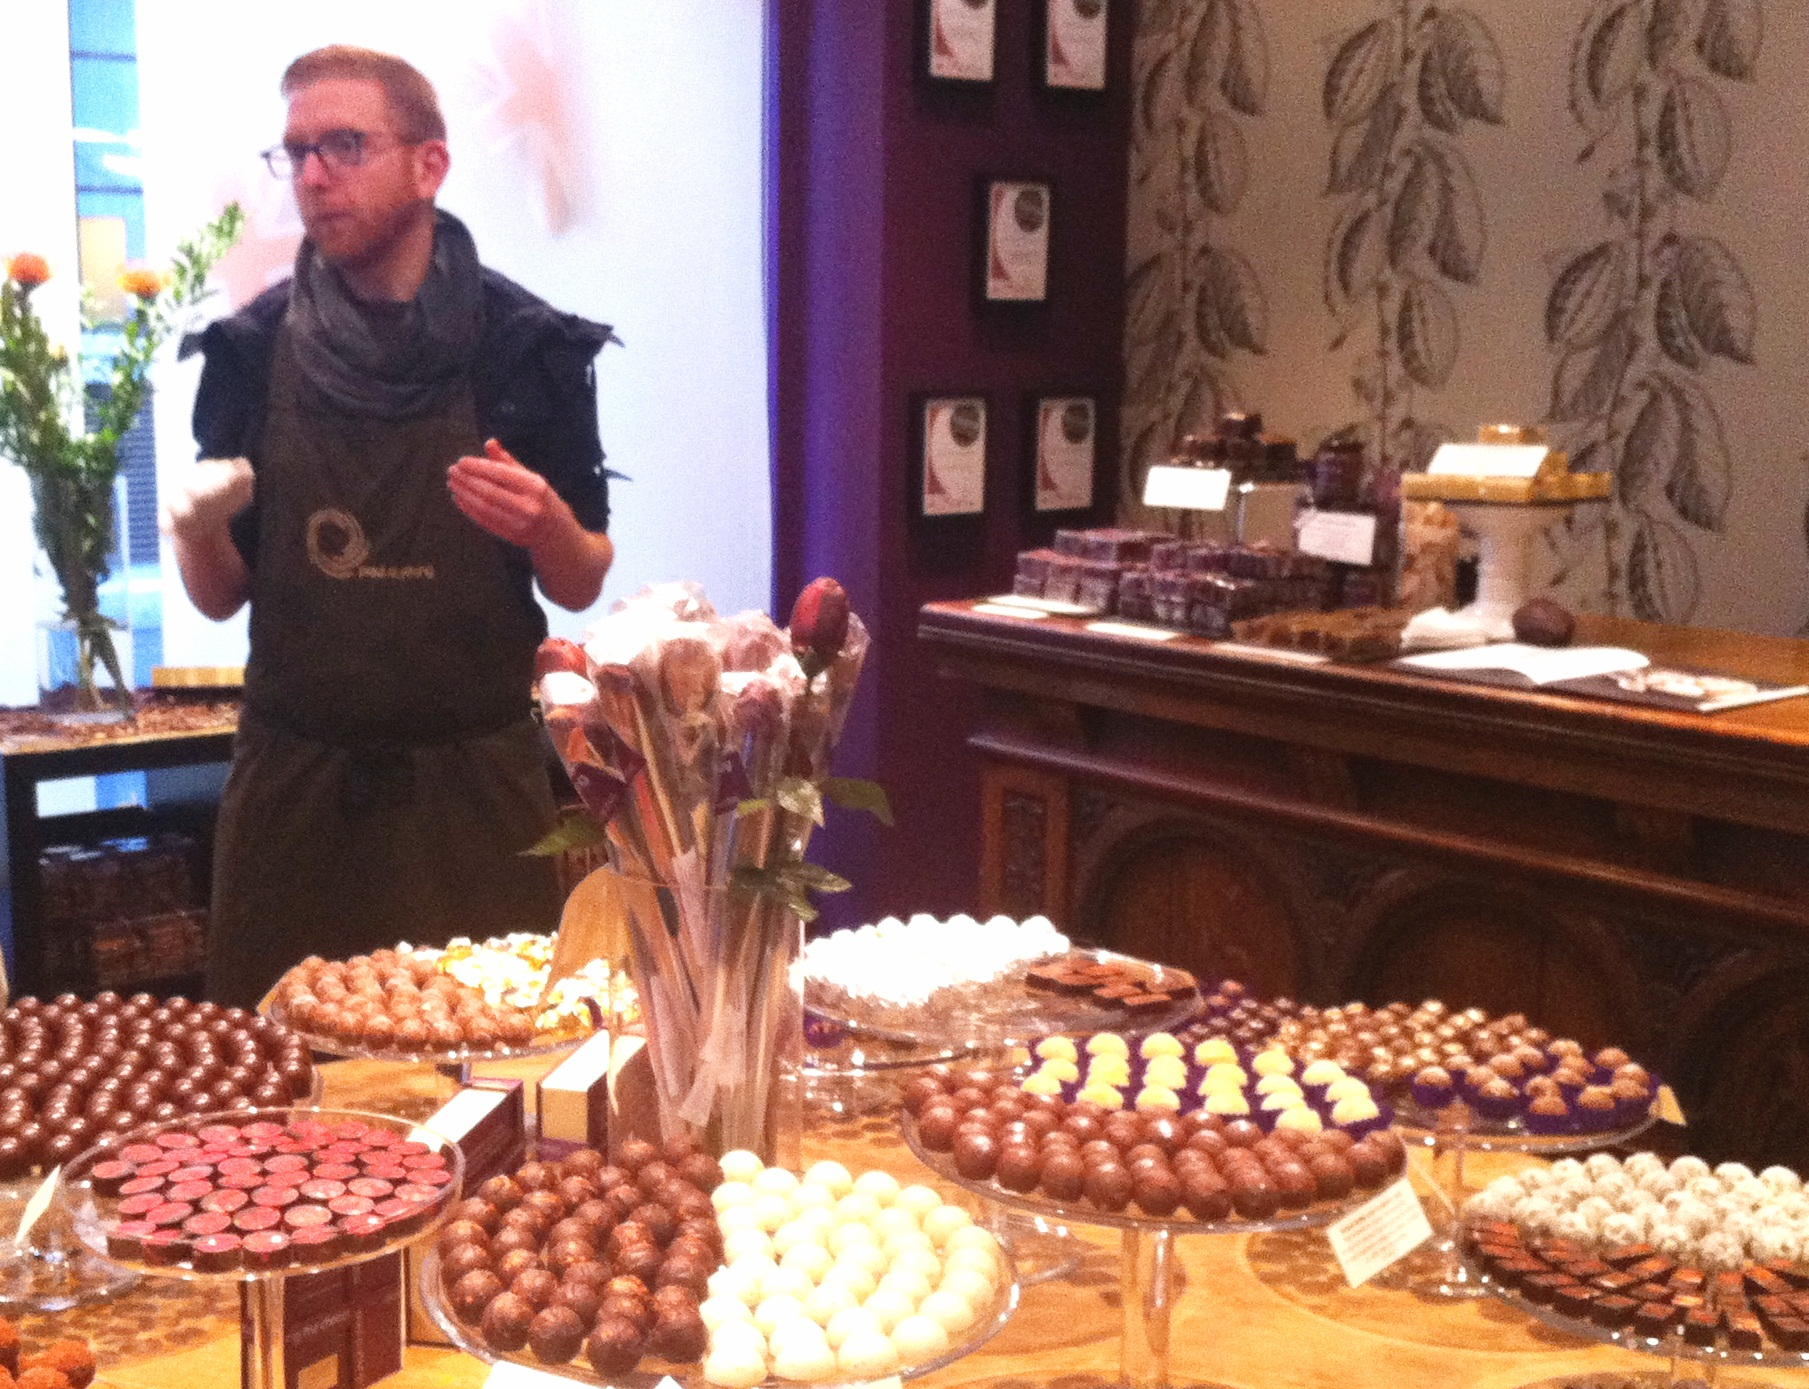 Paul's shop - Mayfair Chocolate Ecstasy Tour